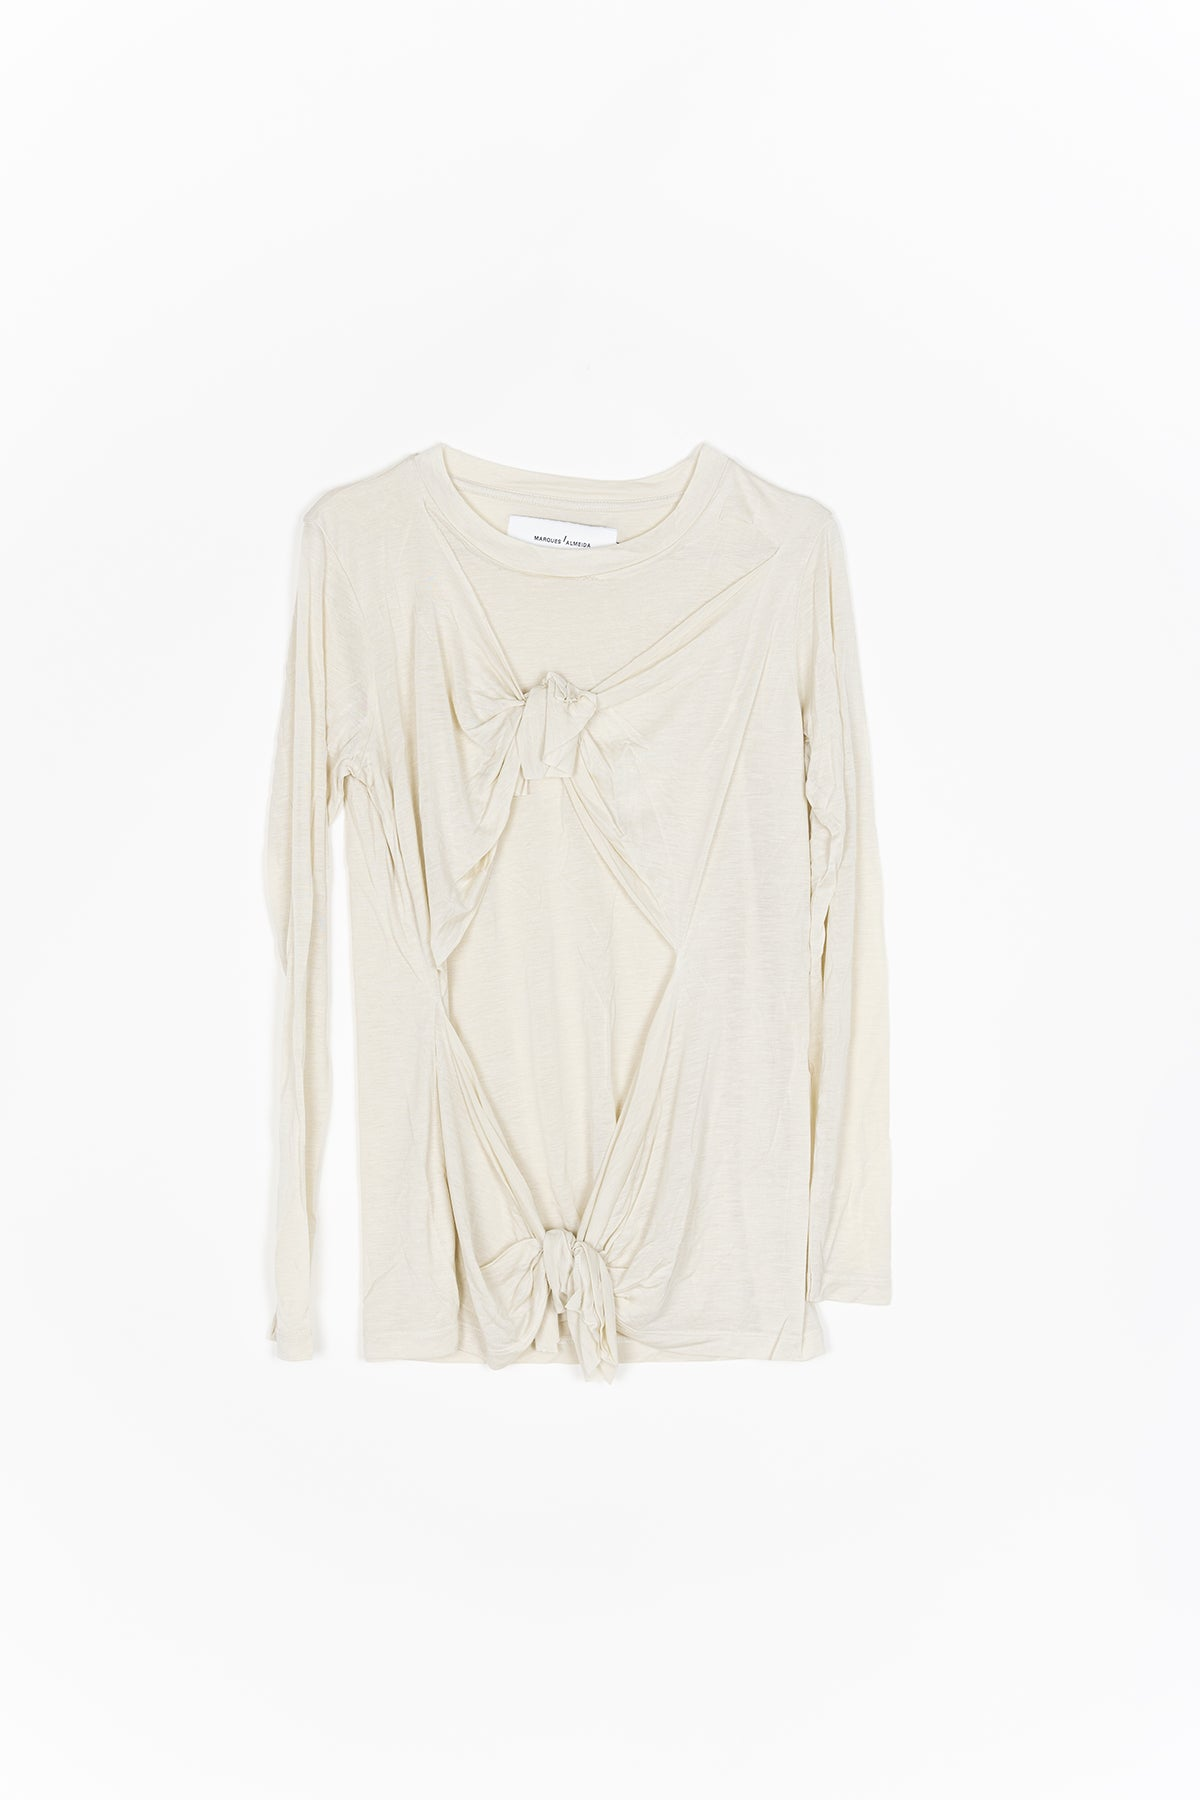 marques almeida BEIGE DOUBLE KNOT LONG SLEEVE T-SHIRT